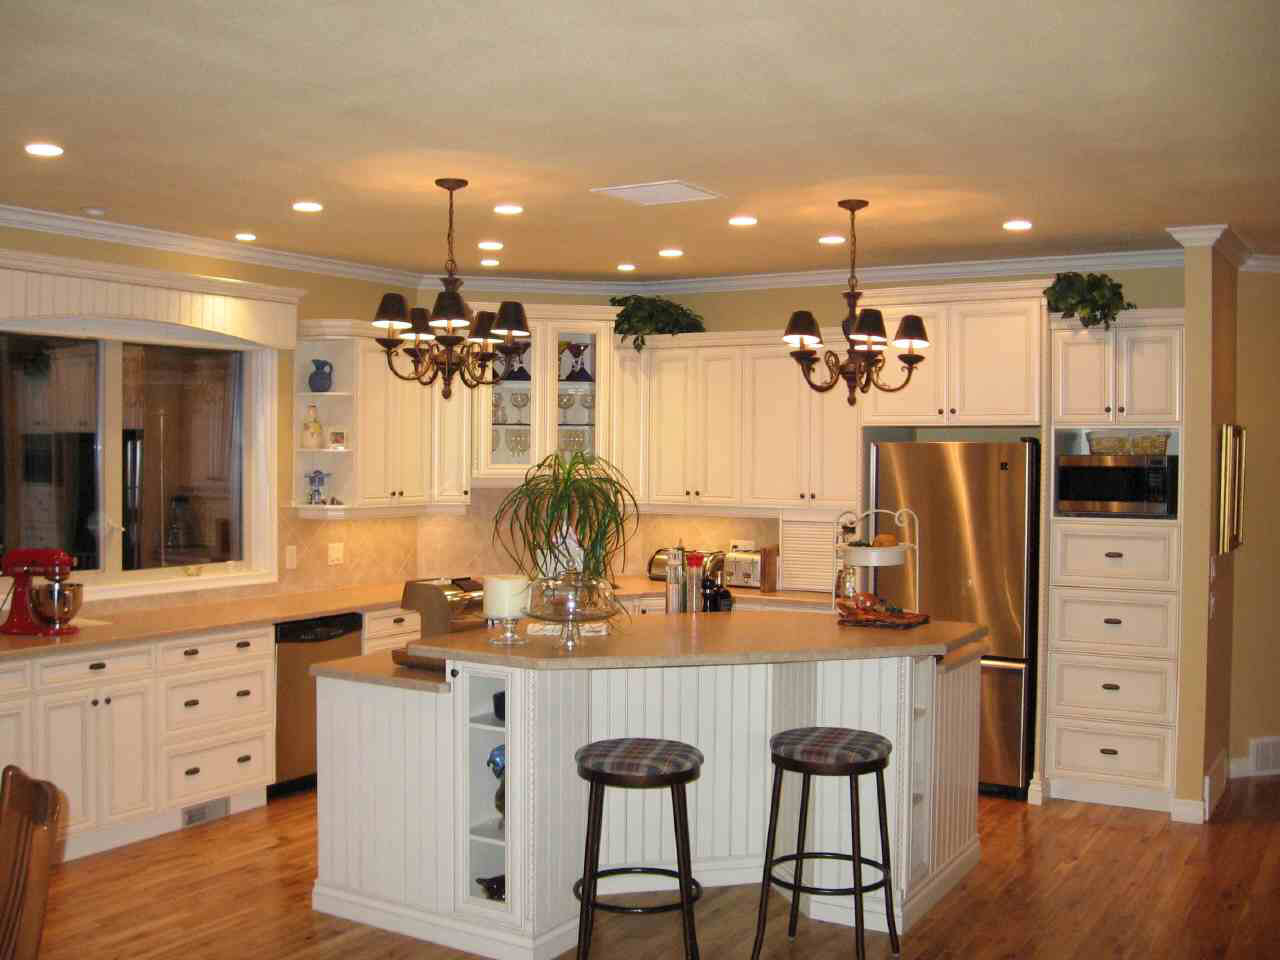 Peartreedesigns beautiful modern kitchen interiors photos images - Interior design for kitchen ...